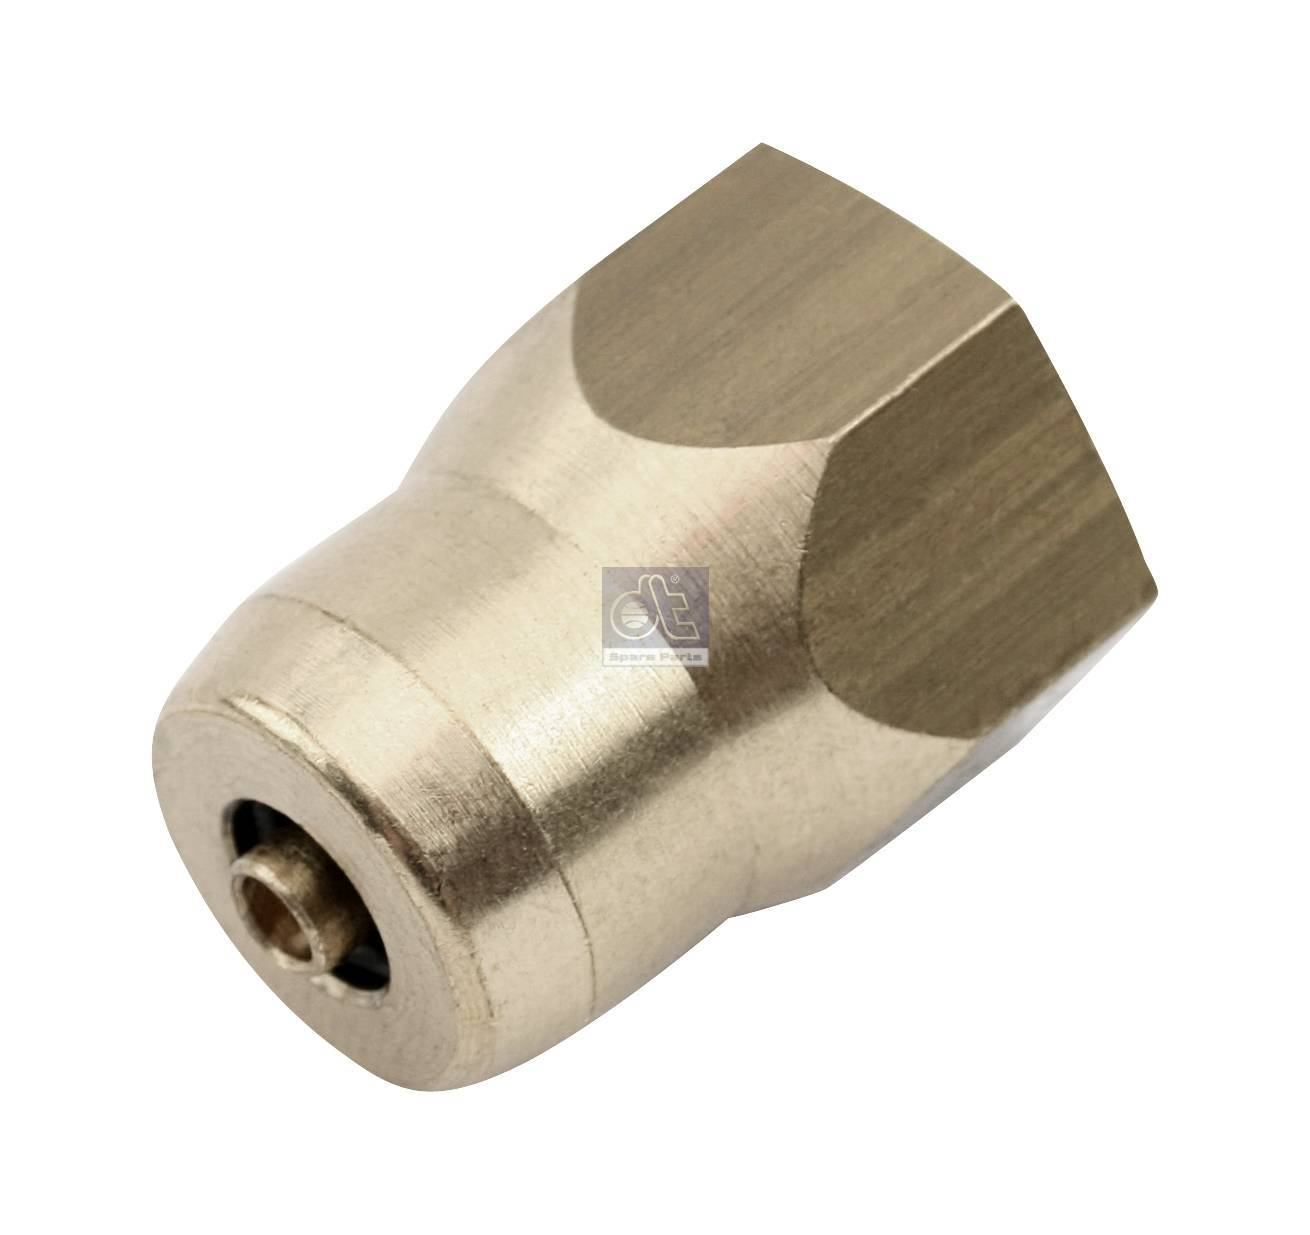 Push-in-connector